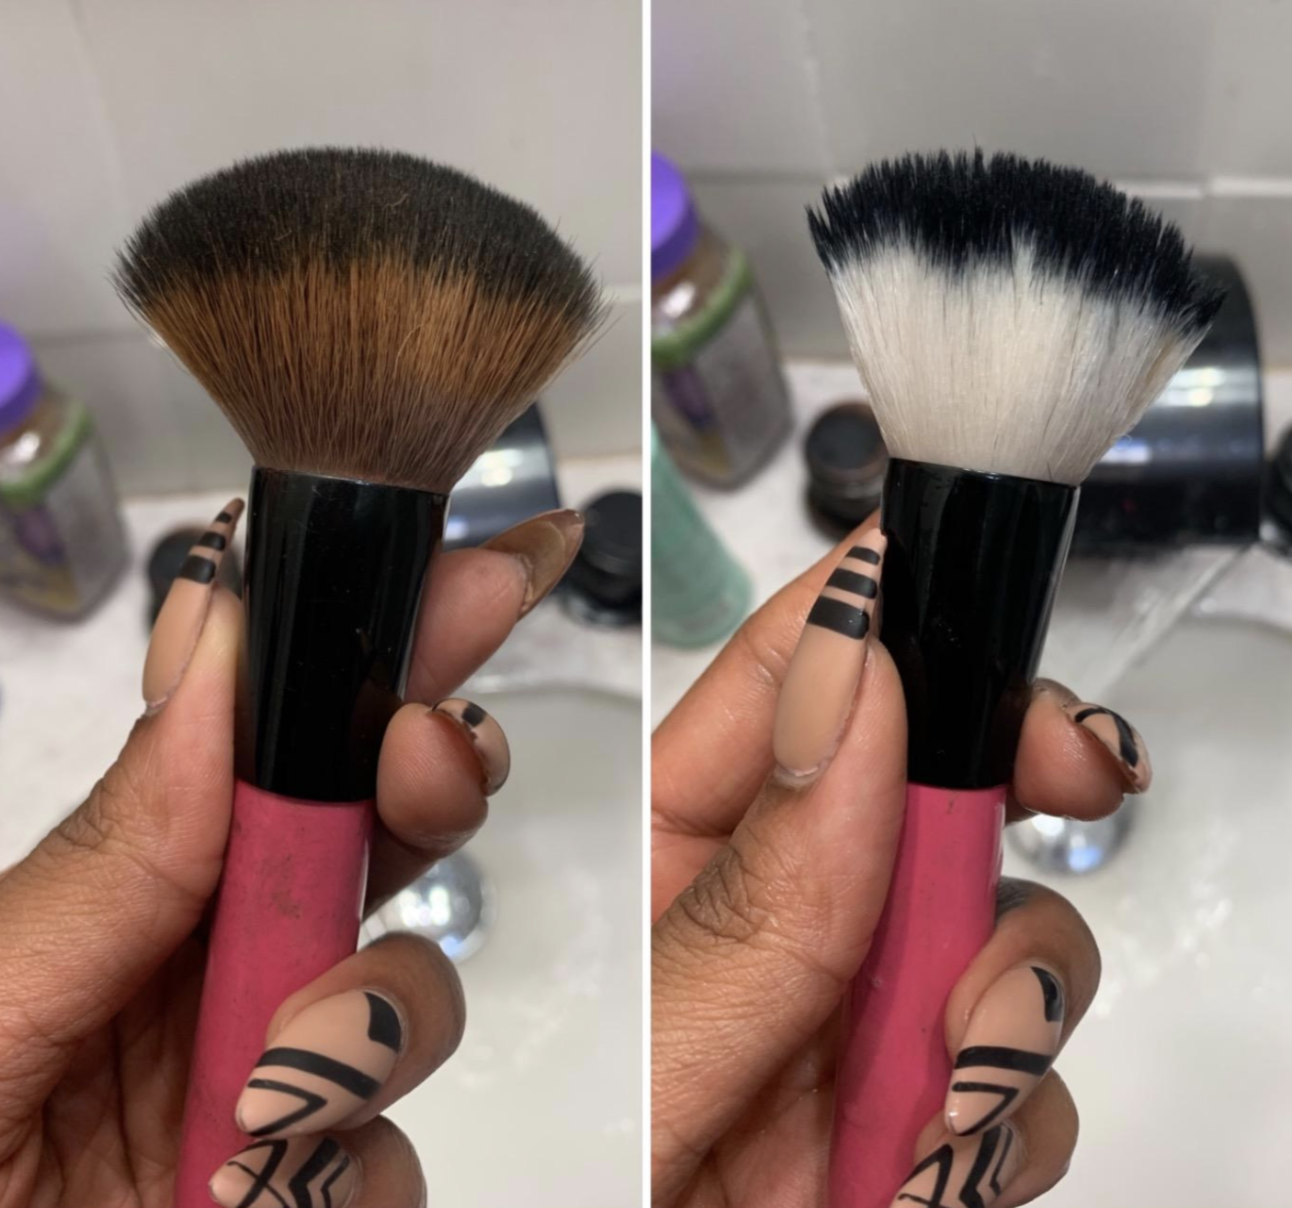 on the left, a reviewer's makeup brush looking dirty and on the right, the same cleaning brush now looking clean